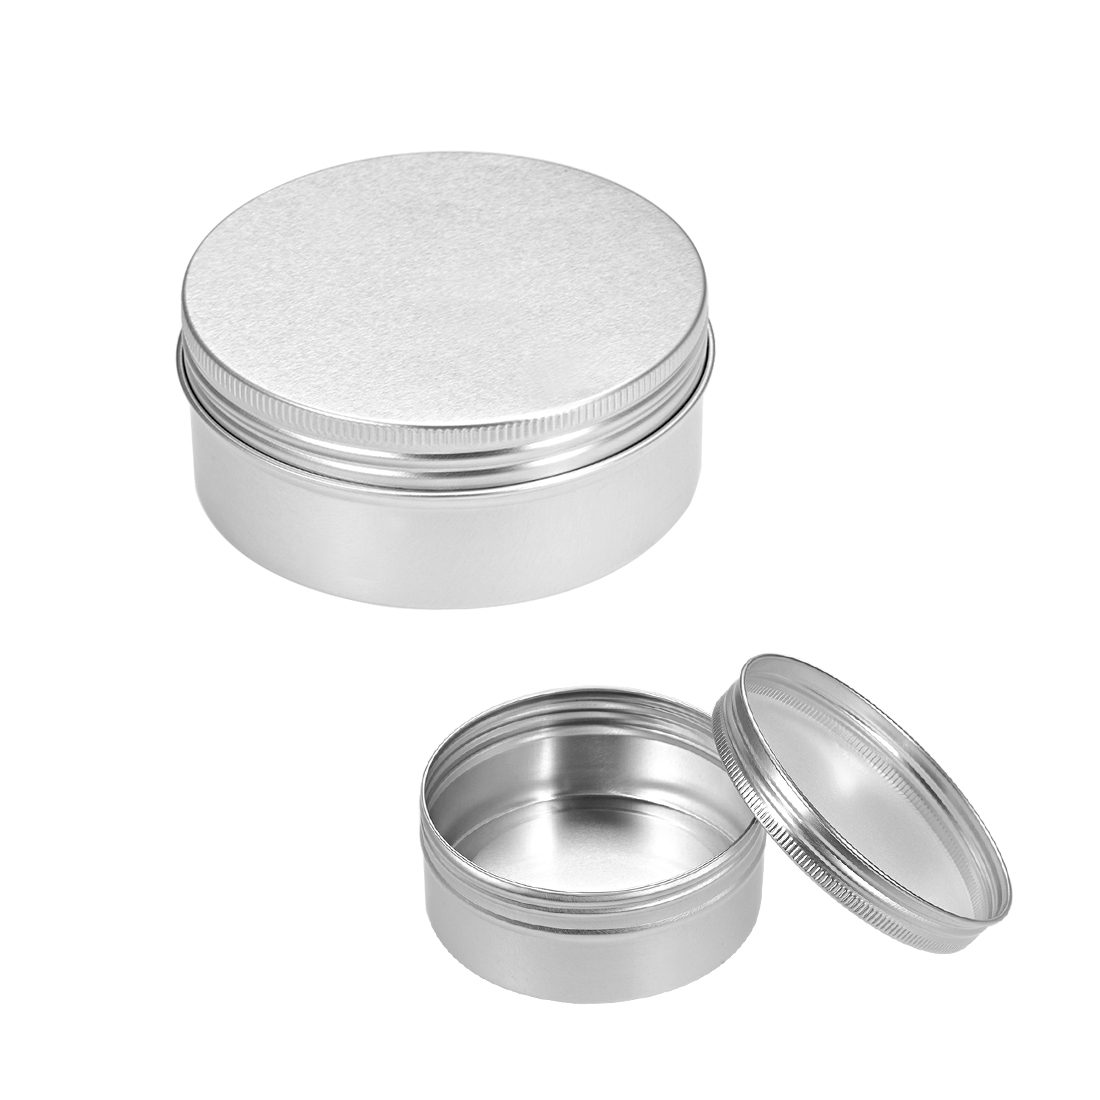 8.3 oz Round Aluminum Cans Tin Can Screw Top Metal Lid Containers 250ml, 3pcs